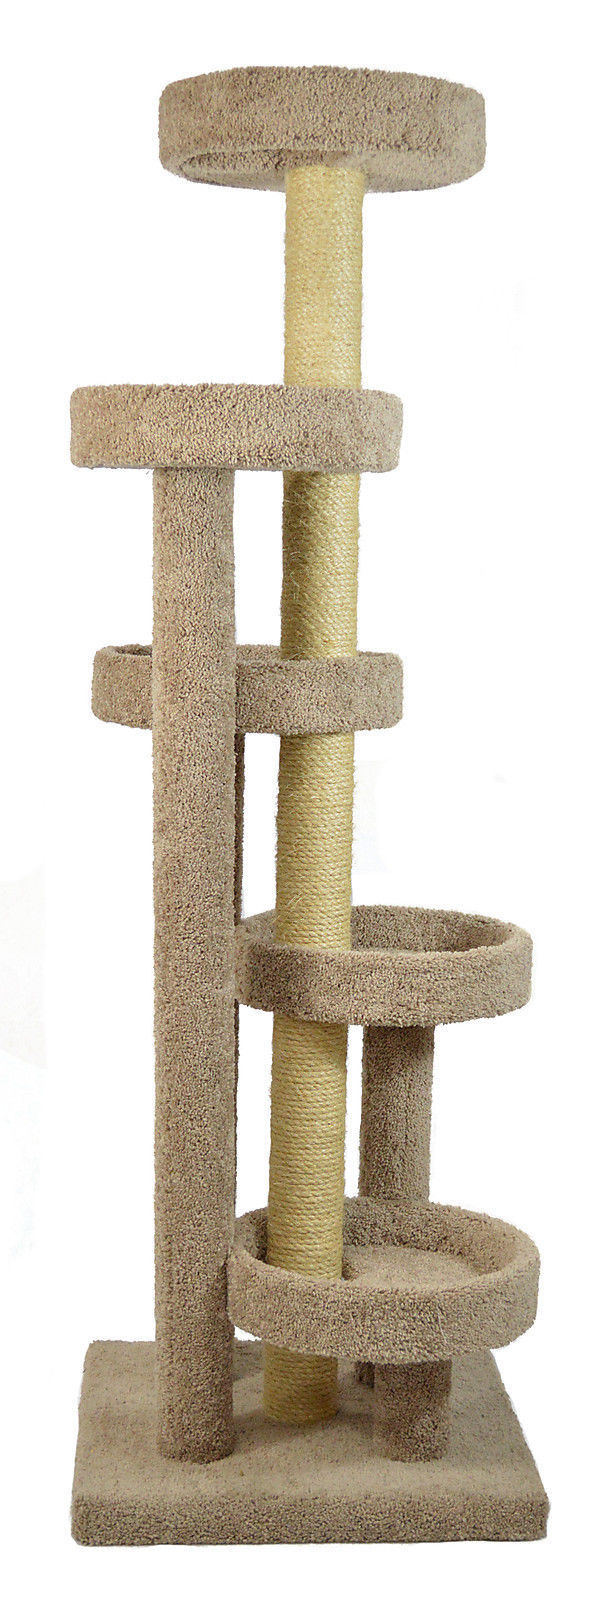 Chimney Sweep 77 Quot Tall Cat Tree Free Shipping In The